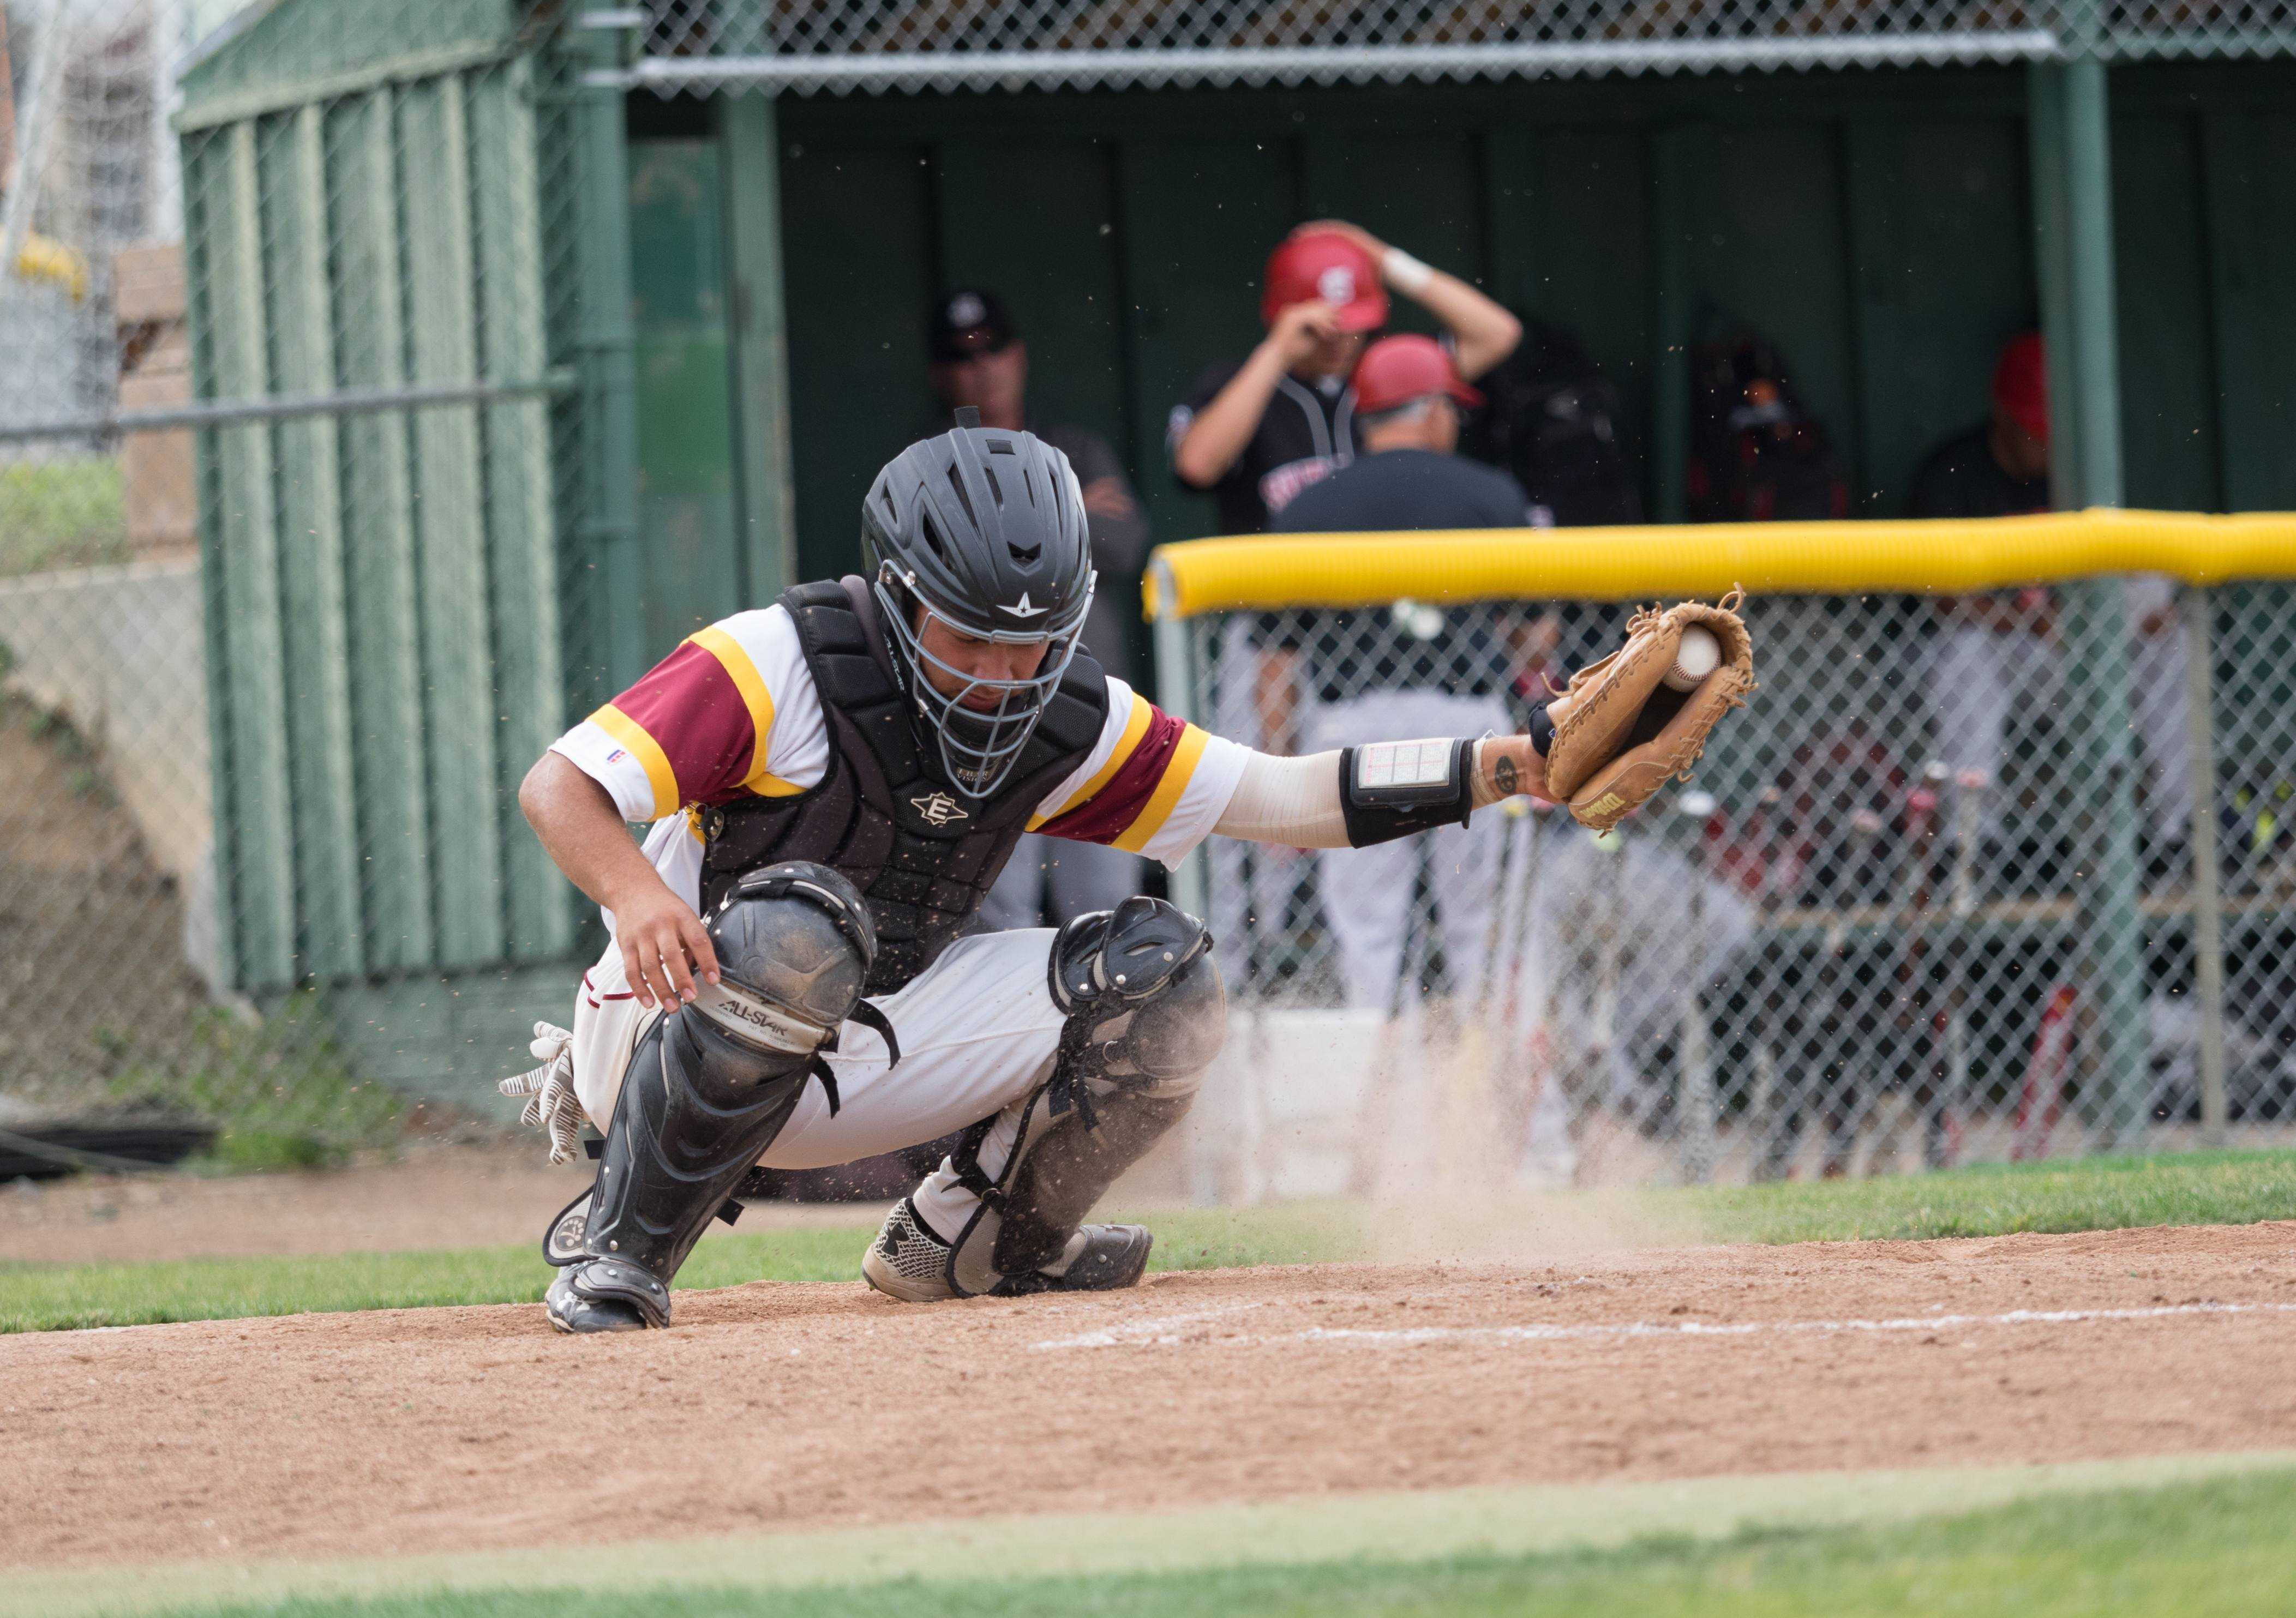 Catcher Rohith Mahanty scoops a bouncing pitch from the dirt in the De Anza College baseball game against San Francisco City College on Thursday, April 7.